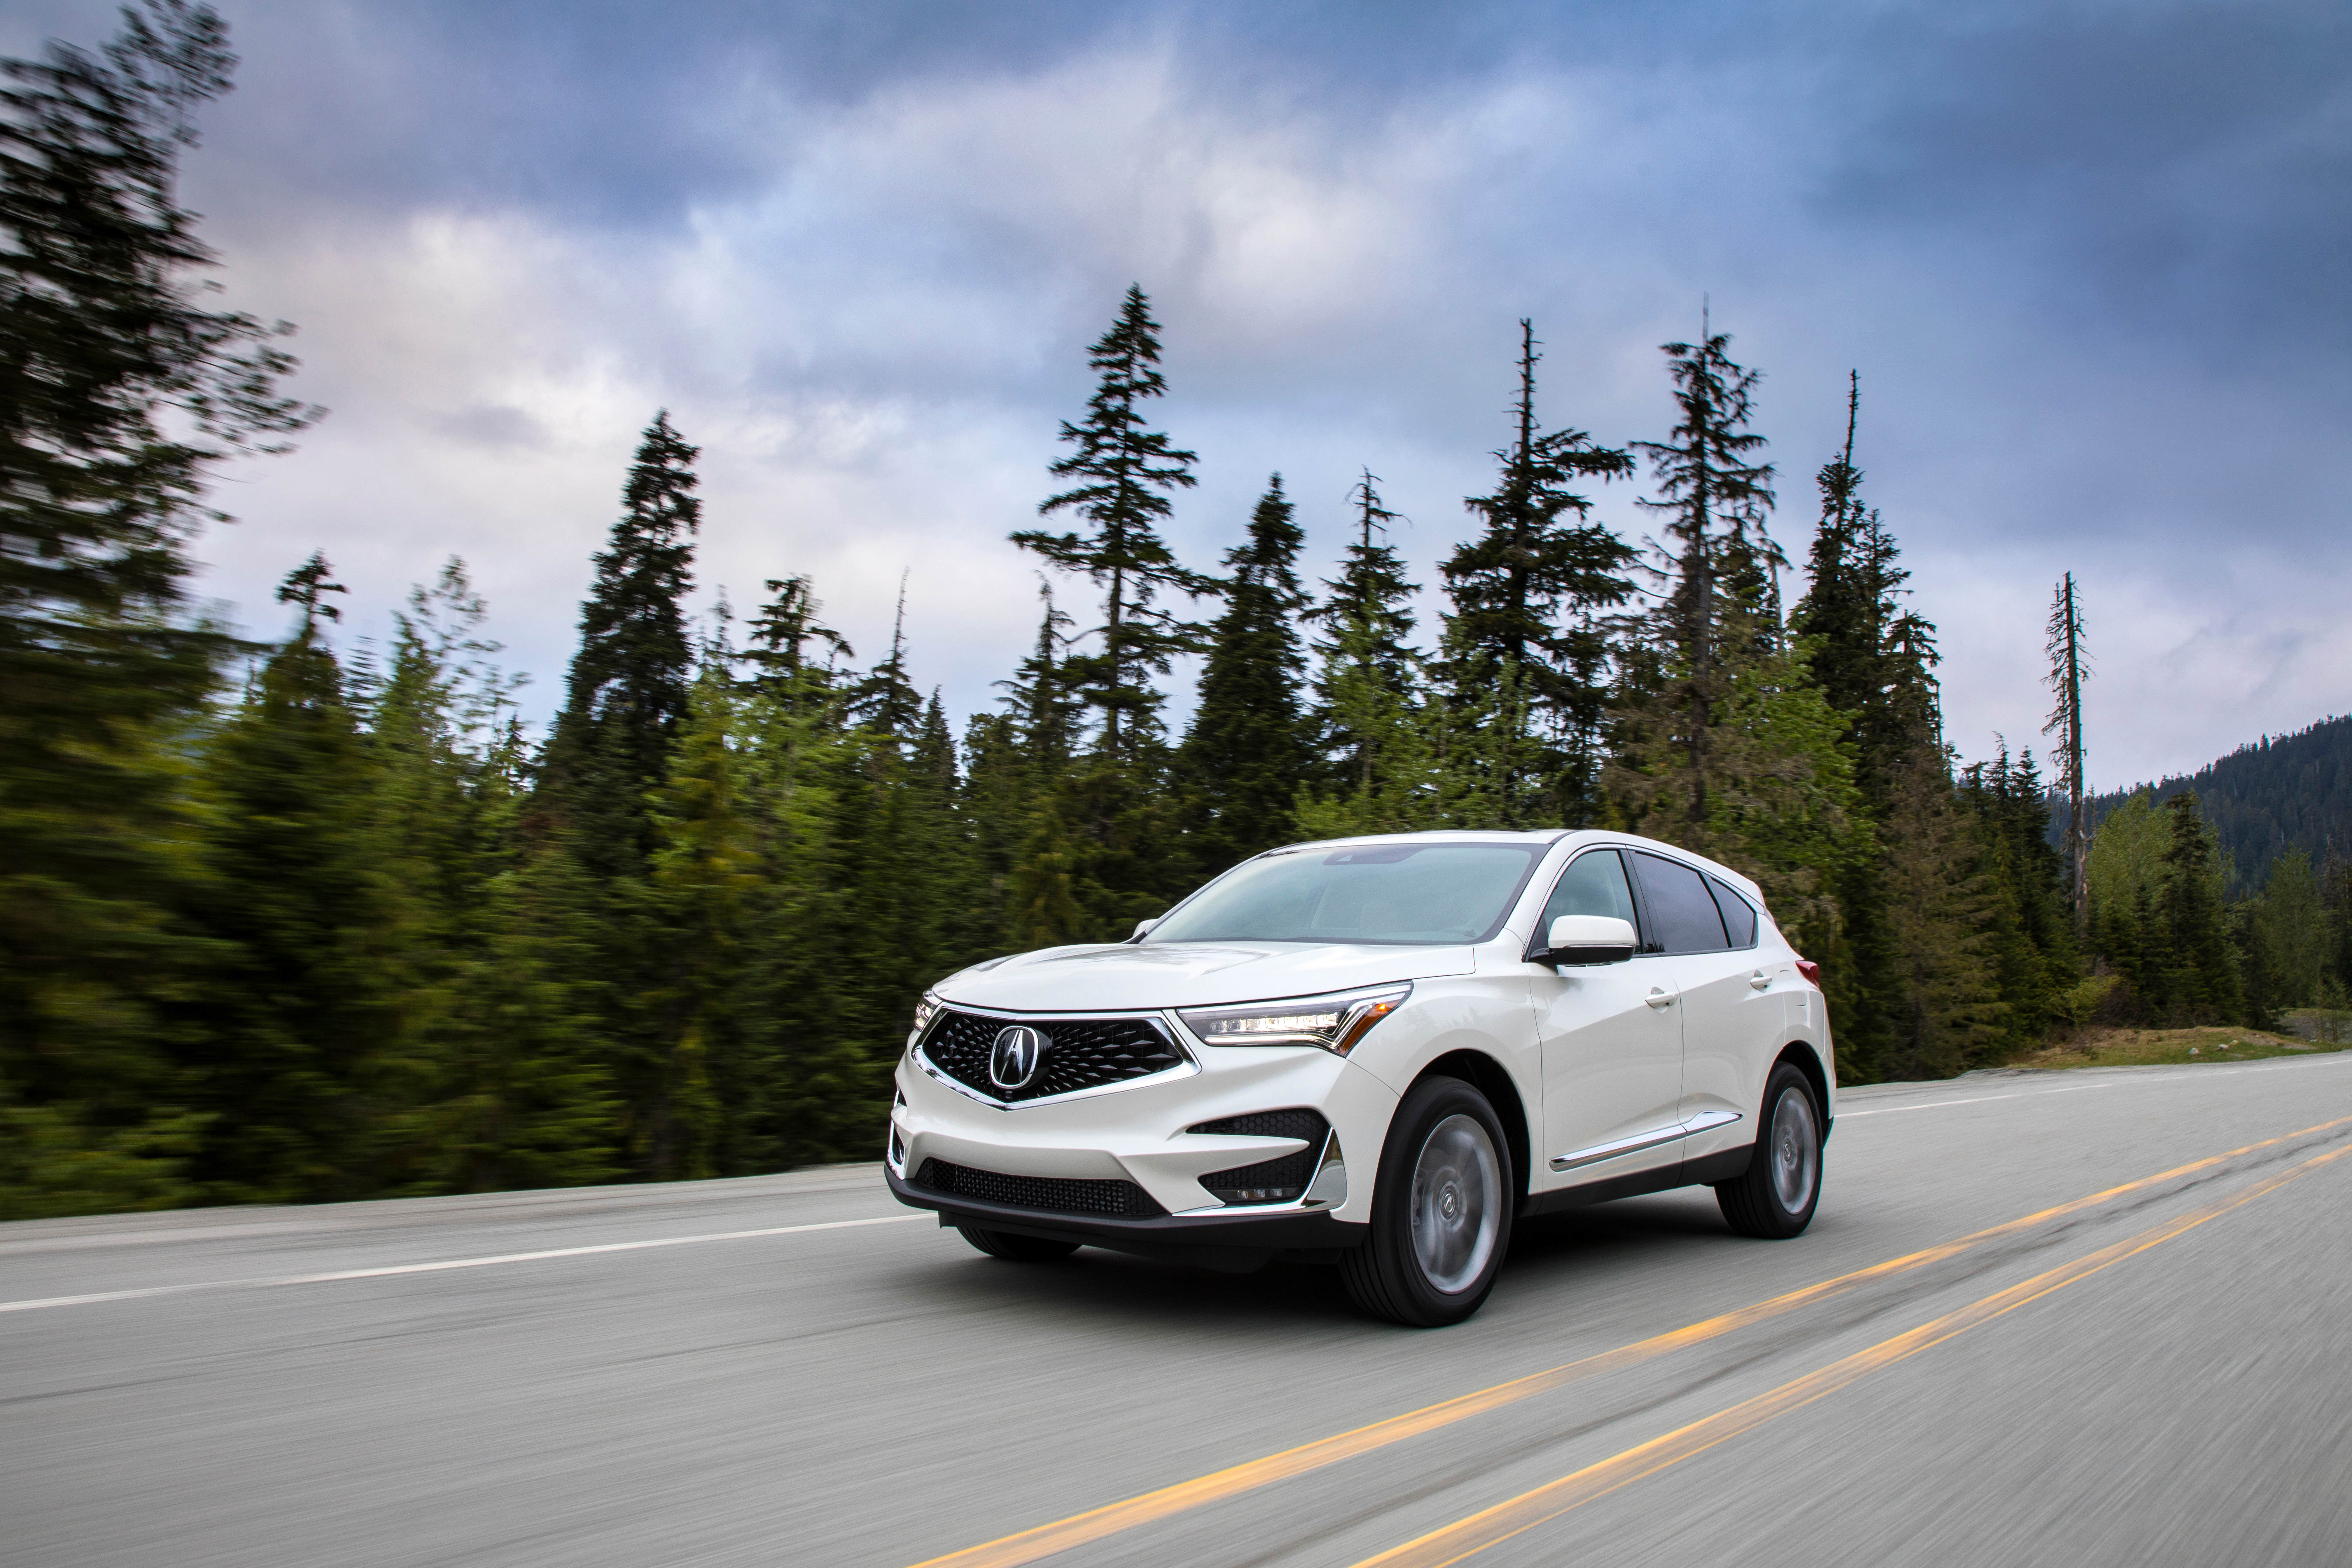 Acura Rdx Latest News Reviews Specifications Prices Photos And Videos Top Speed